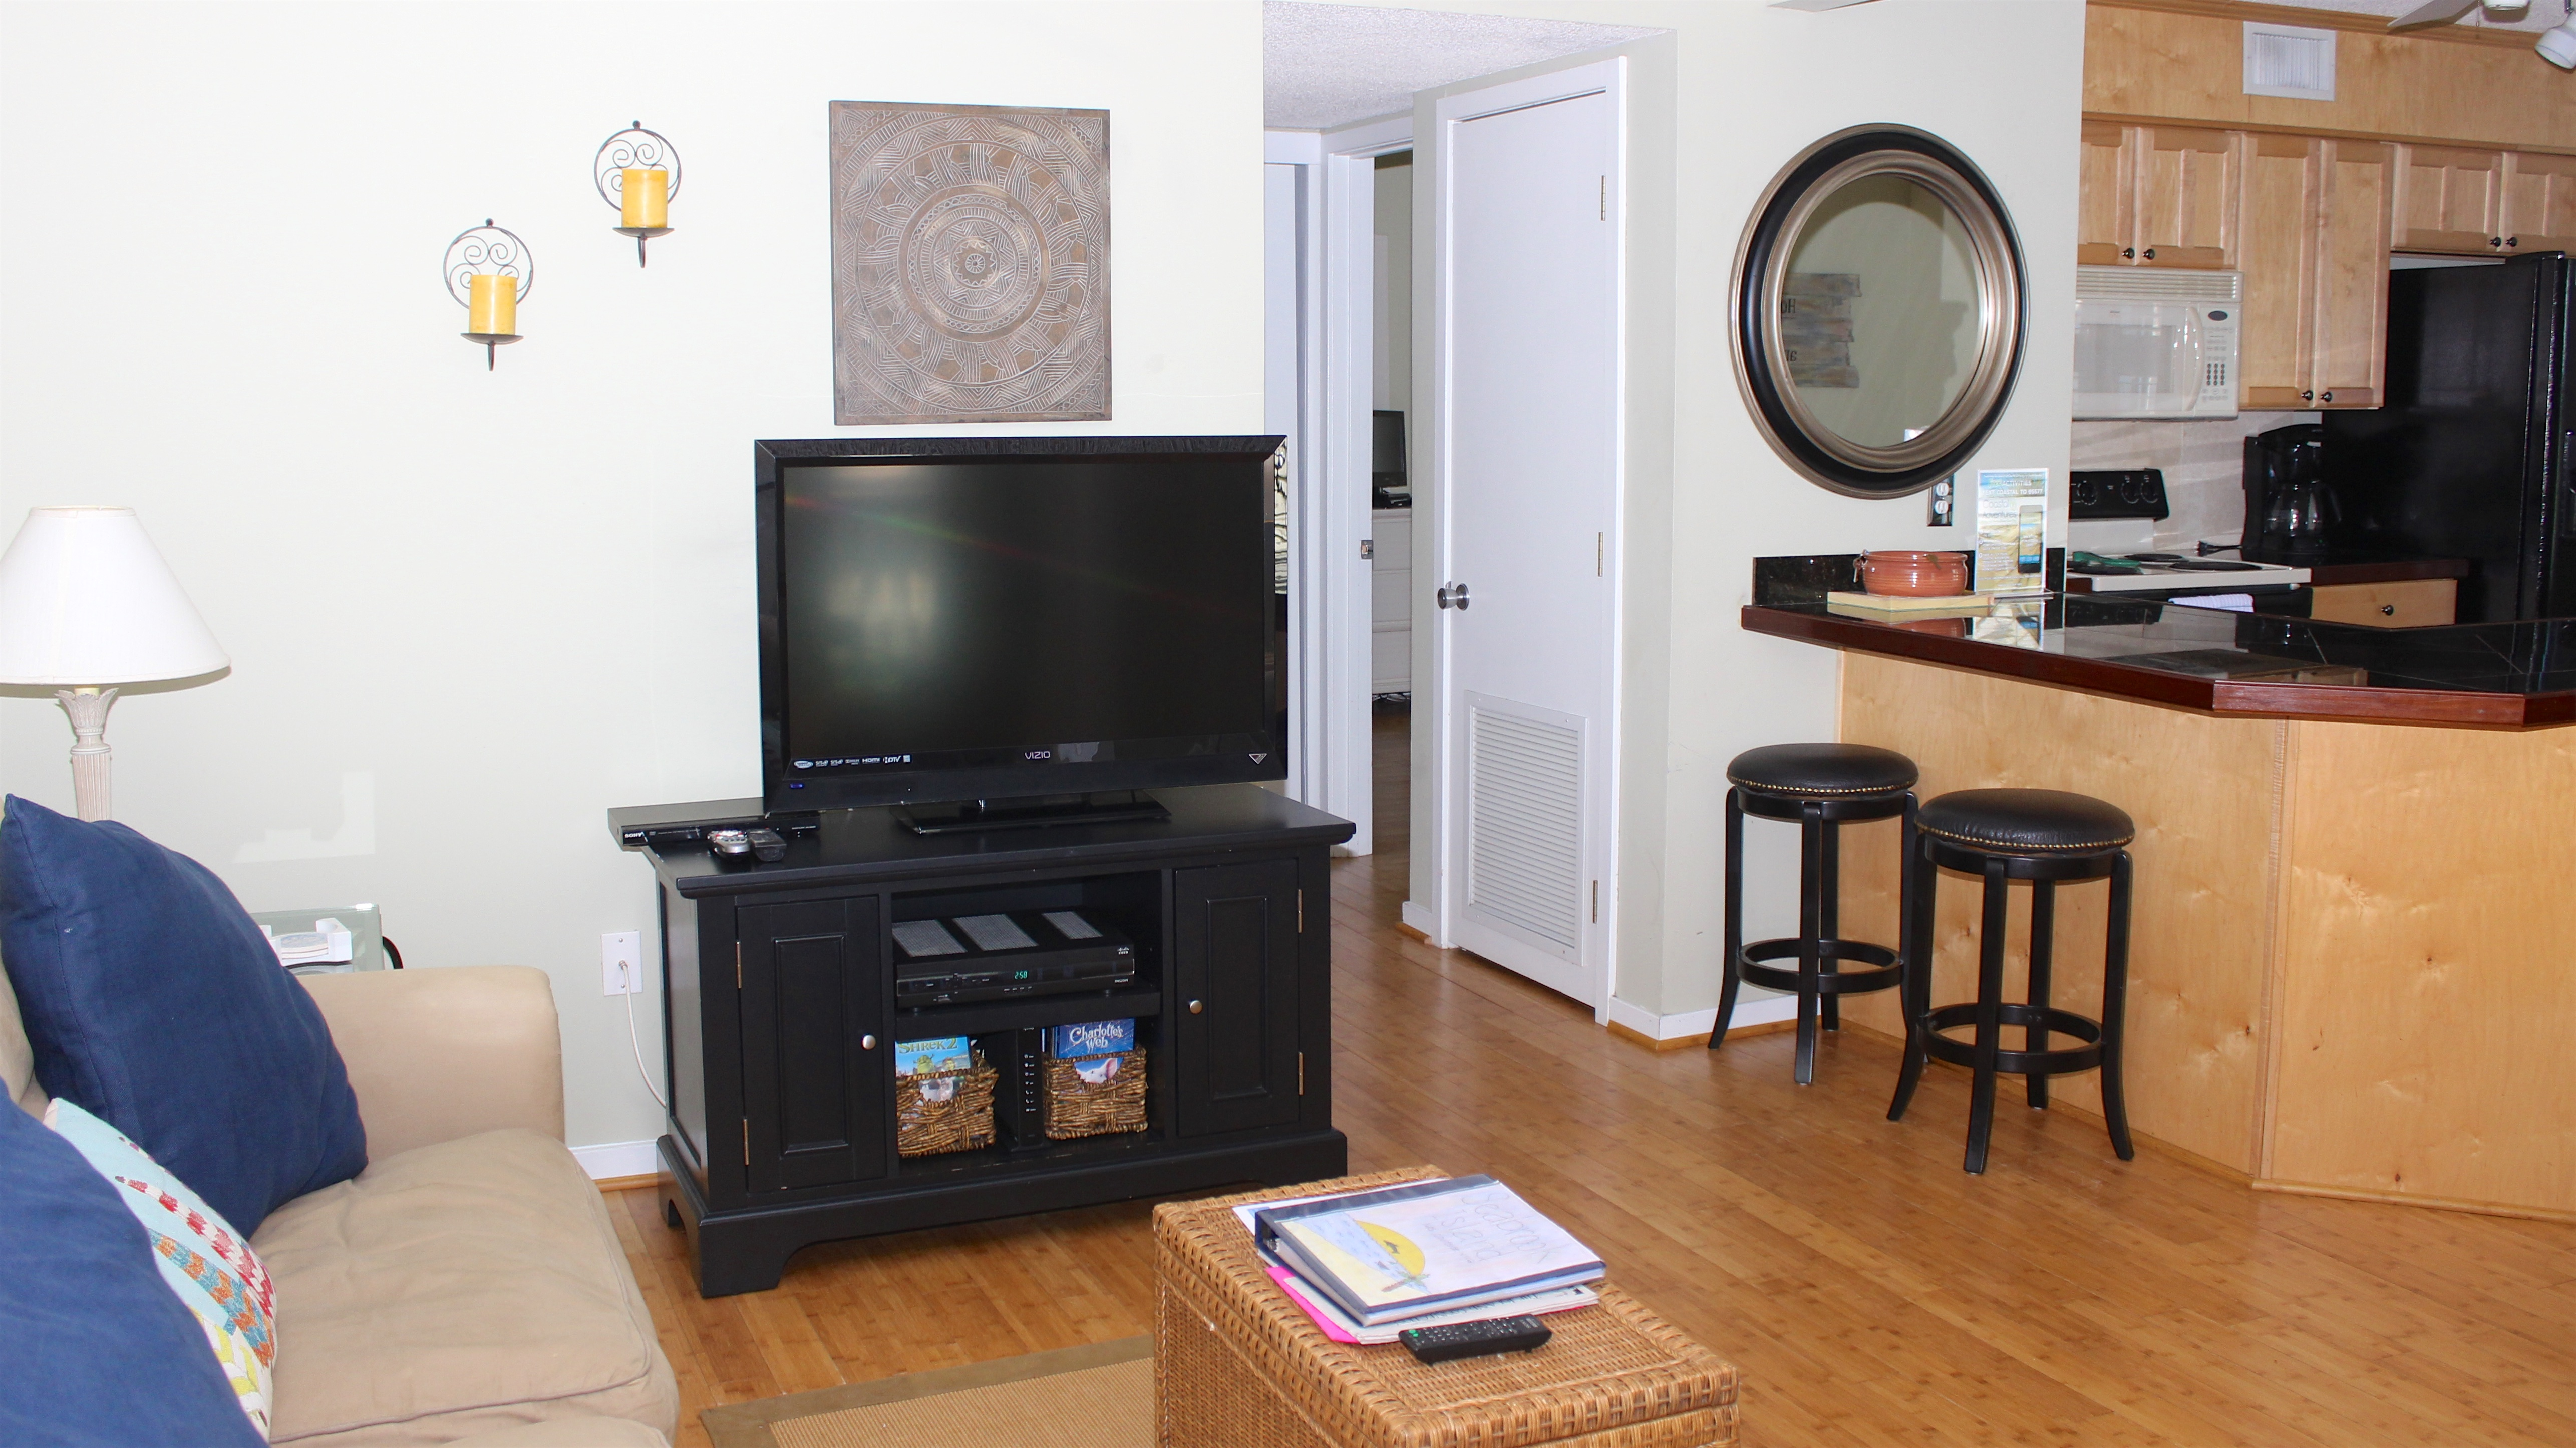 It features hardwood floors and a large HDTV/DVD.